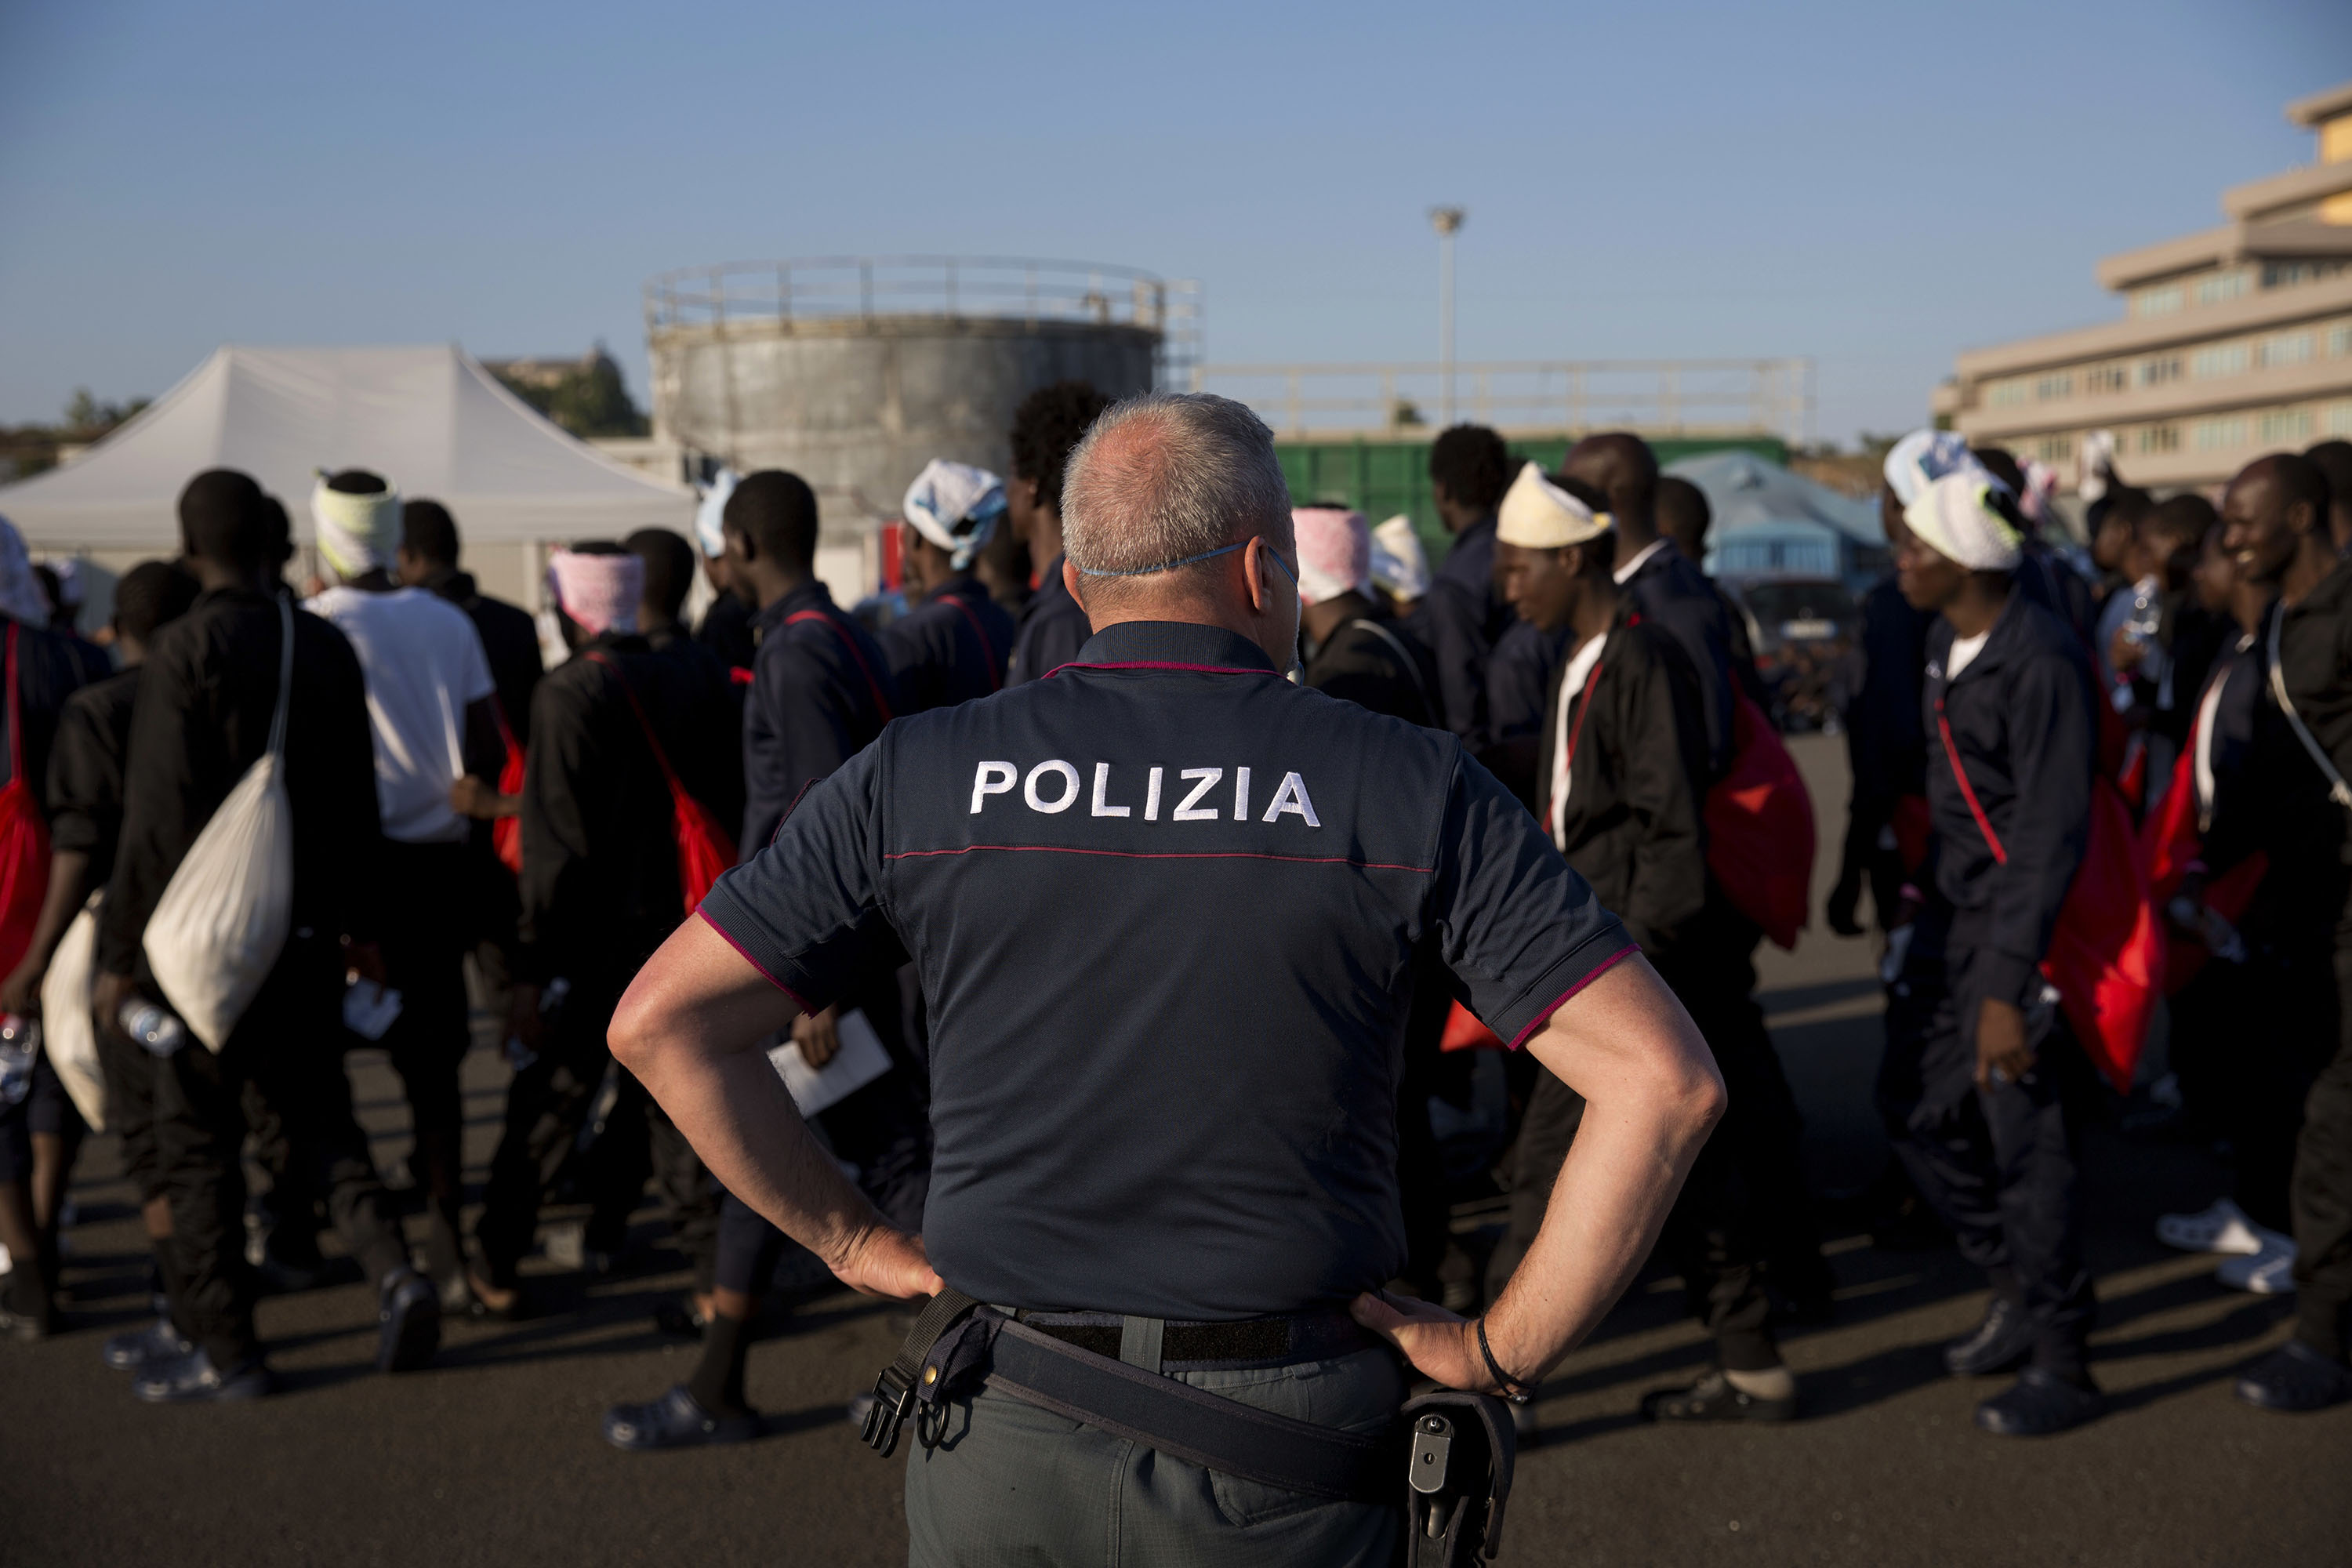 An Italian border police officer escorts sub Saharan men on their way to a relocation center, after arriving in the Golfo Azzurro rescue vessel at the port of Augusta, in Sicily, Italy, with hundreds of migrants aboard, rescued by members of Proactive Open Arms NGO, on Friday, June 23, 2017. (AP Photo/Emilio Morenatti)